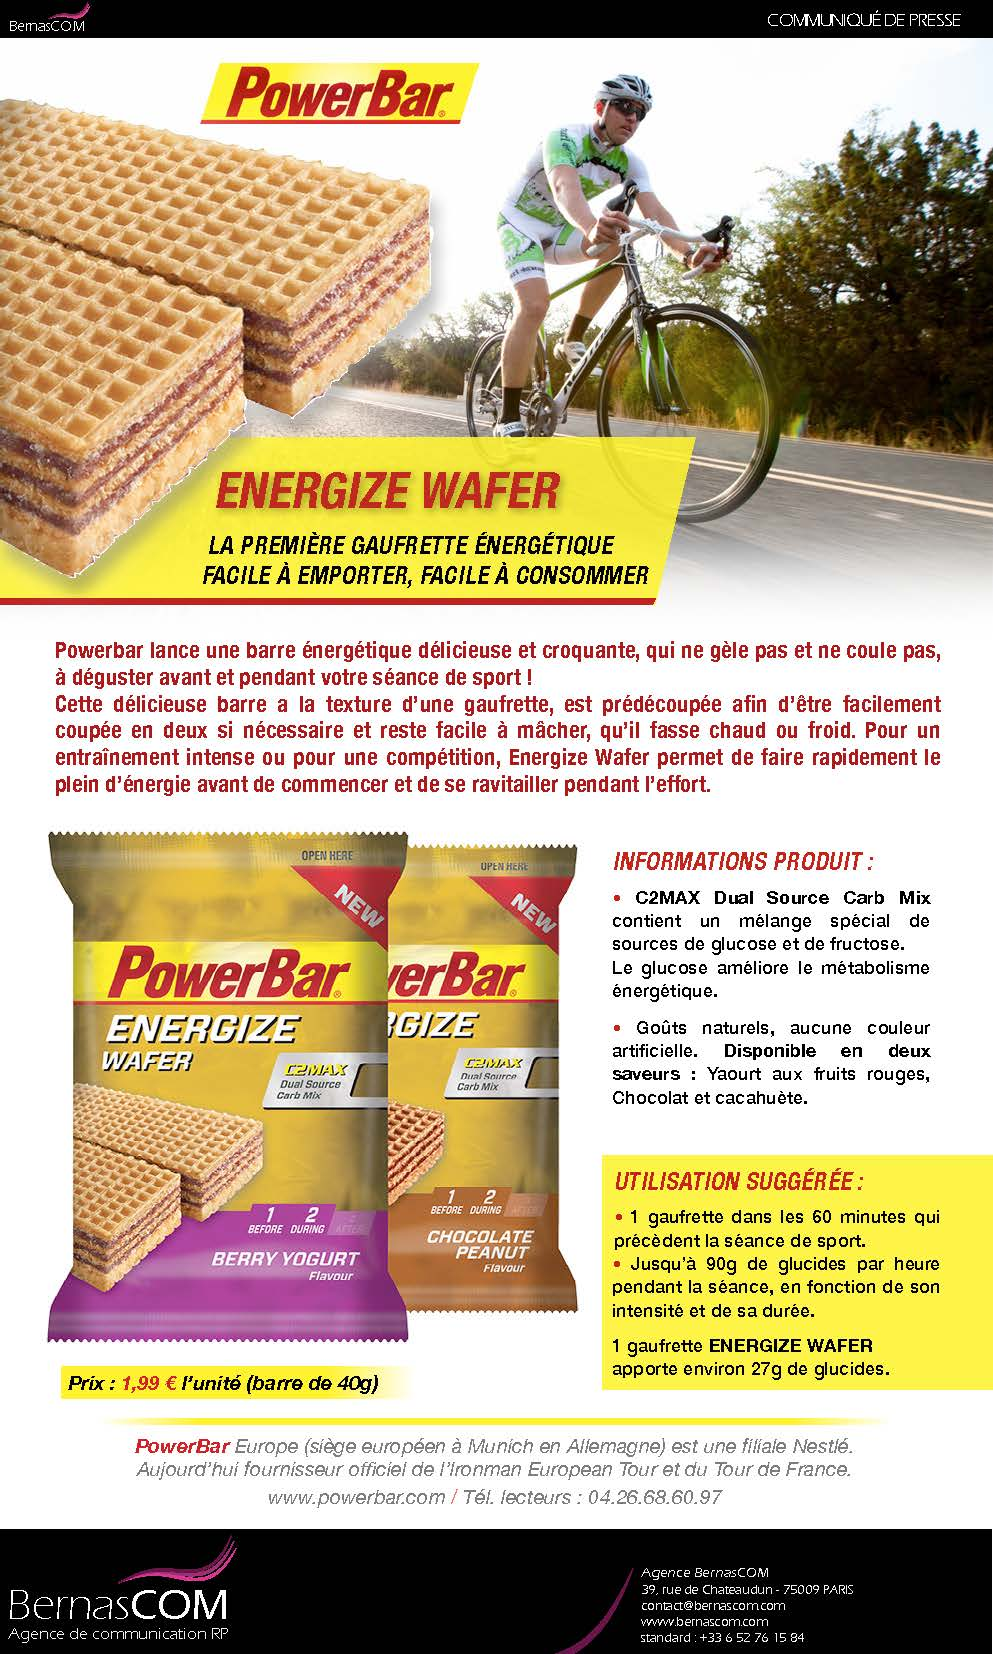 PowerBar_CP_EnergizeWafer_mar14